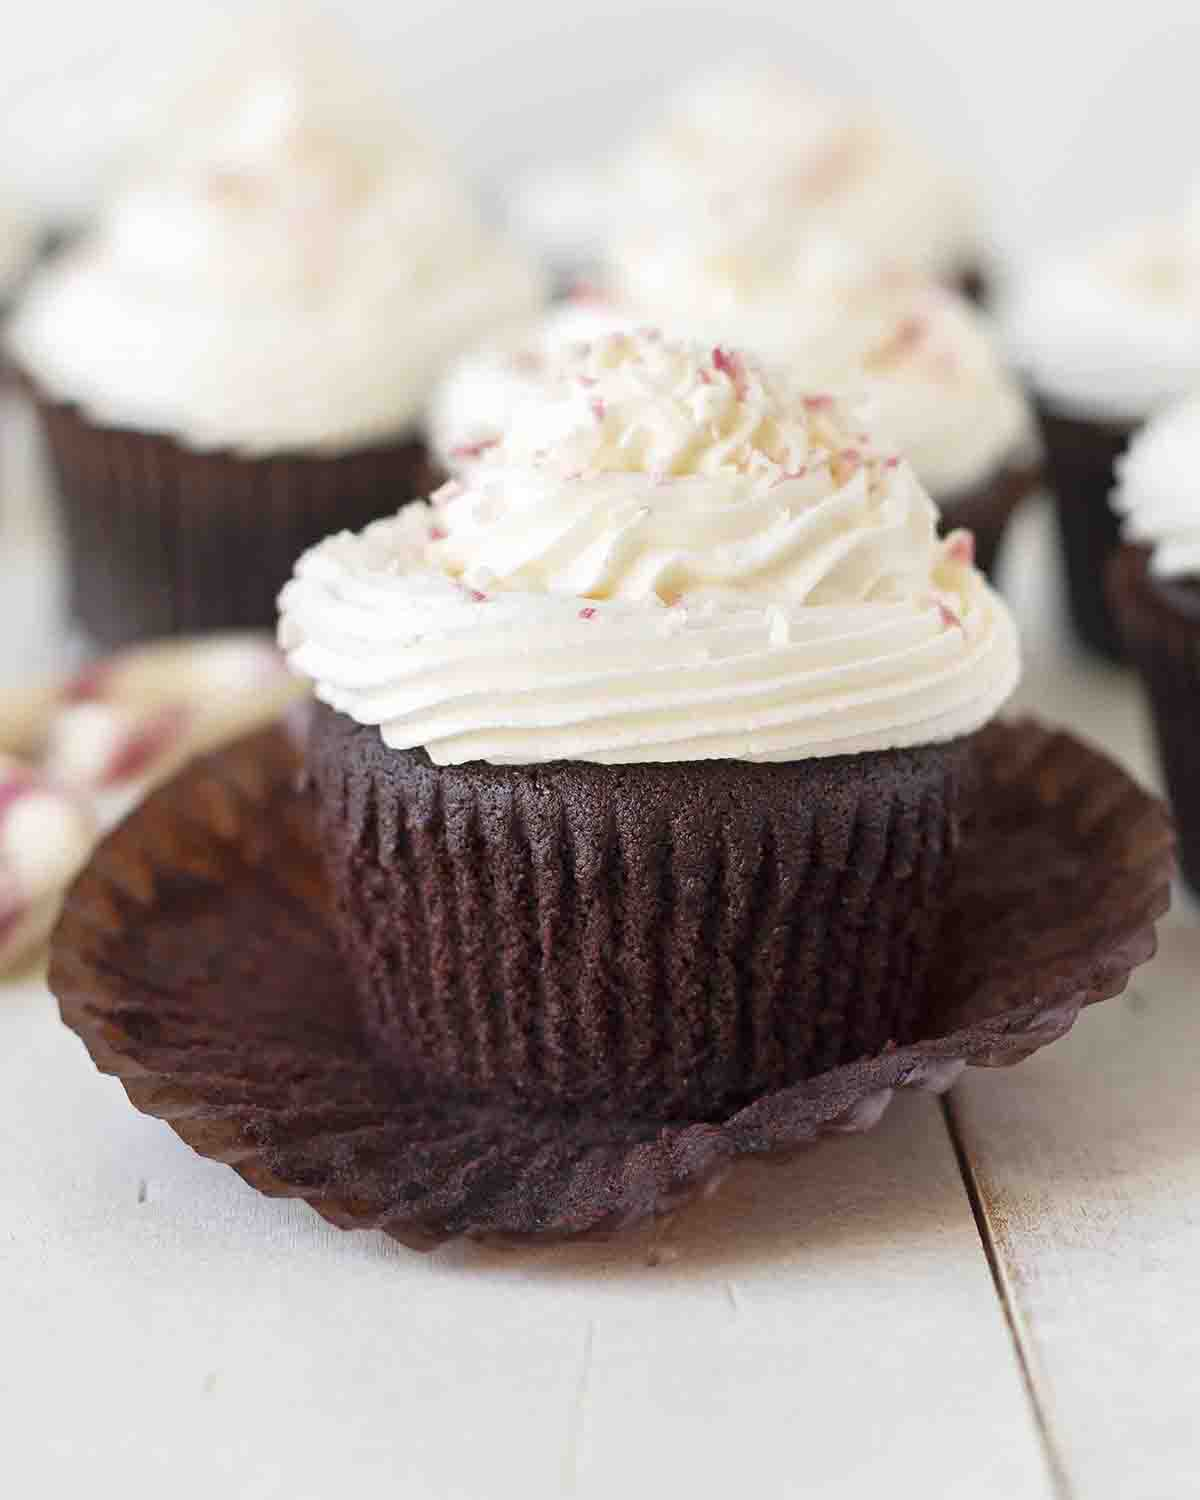 A dark chocolate mint cupcake sitting on a white table with its wrapper peeled back.